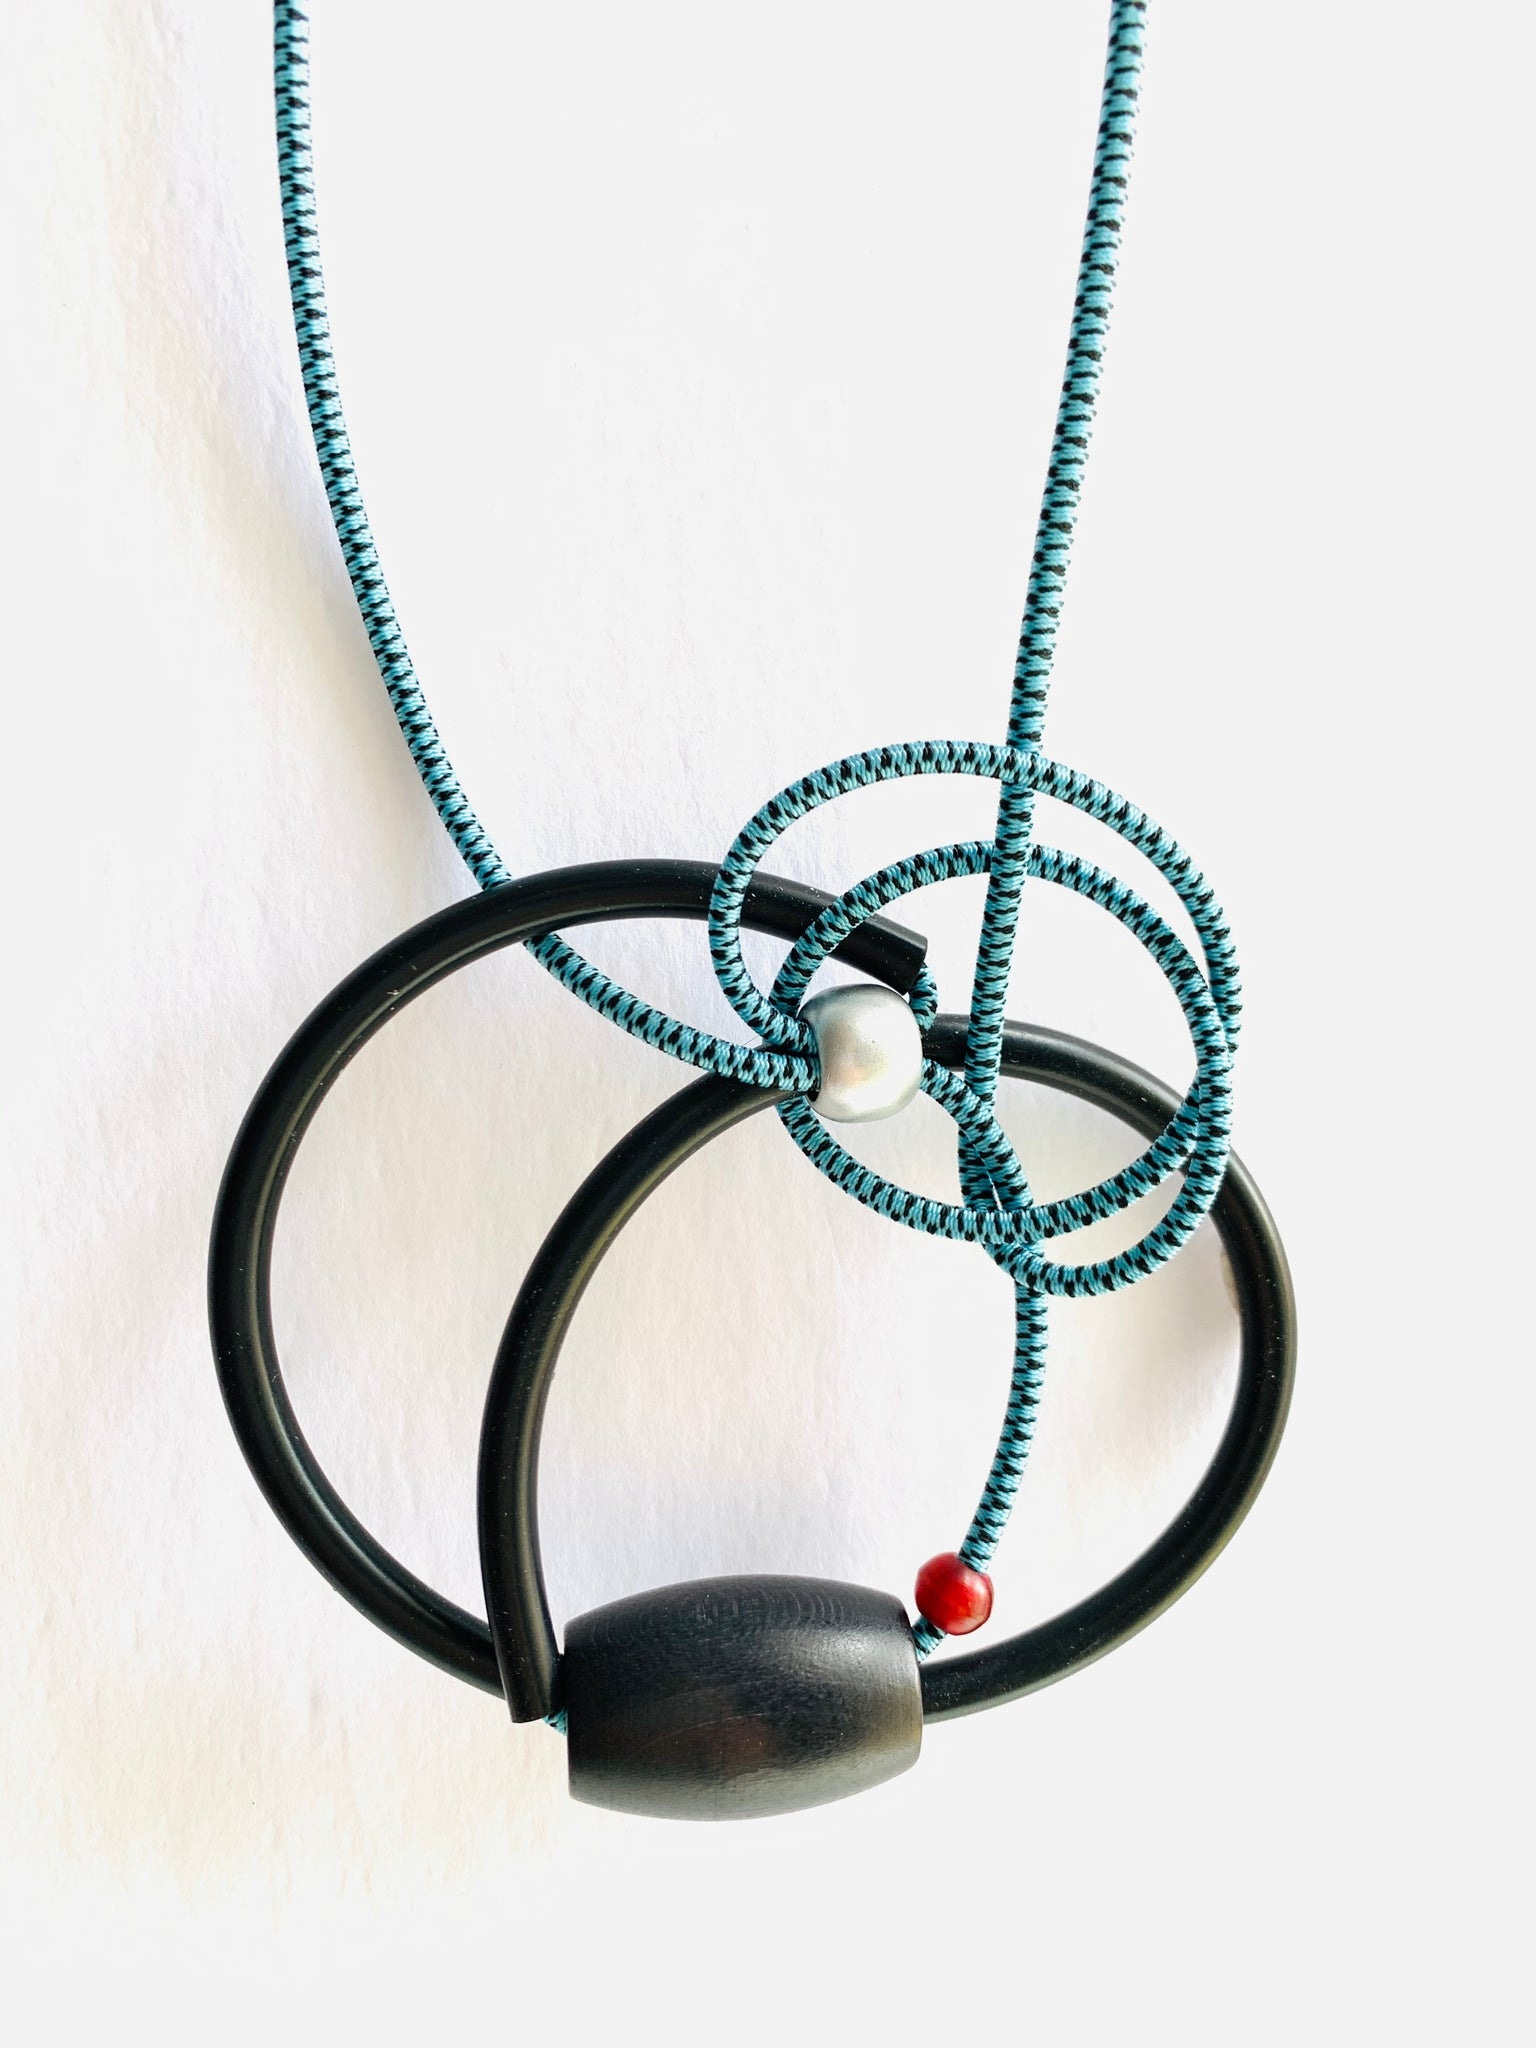 Connecting Necklace in Light Blue and Black